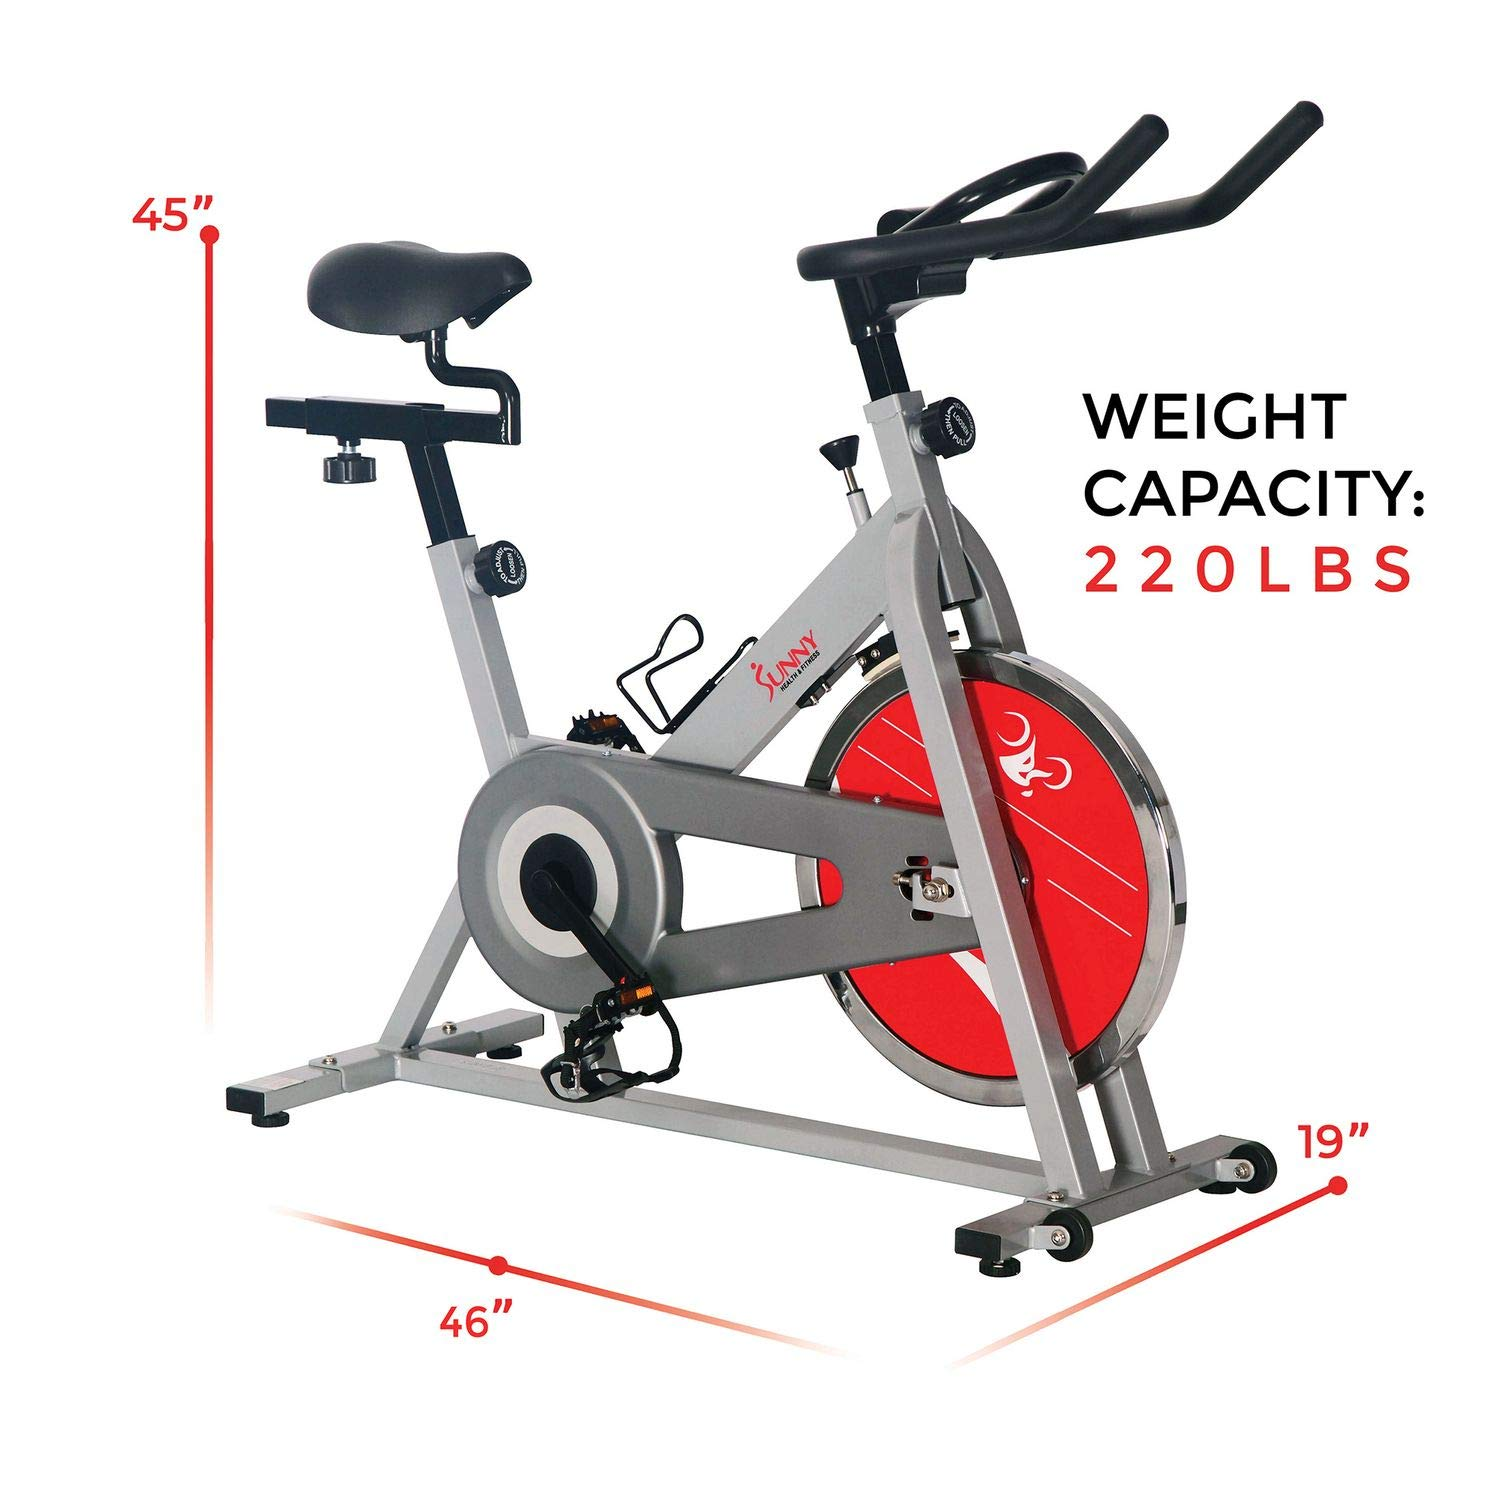 Sunny Health & Fitness SF-B1001S Indoor Cycling Bike, Silver by Sunny Health & Fitness (Image #18)